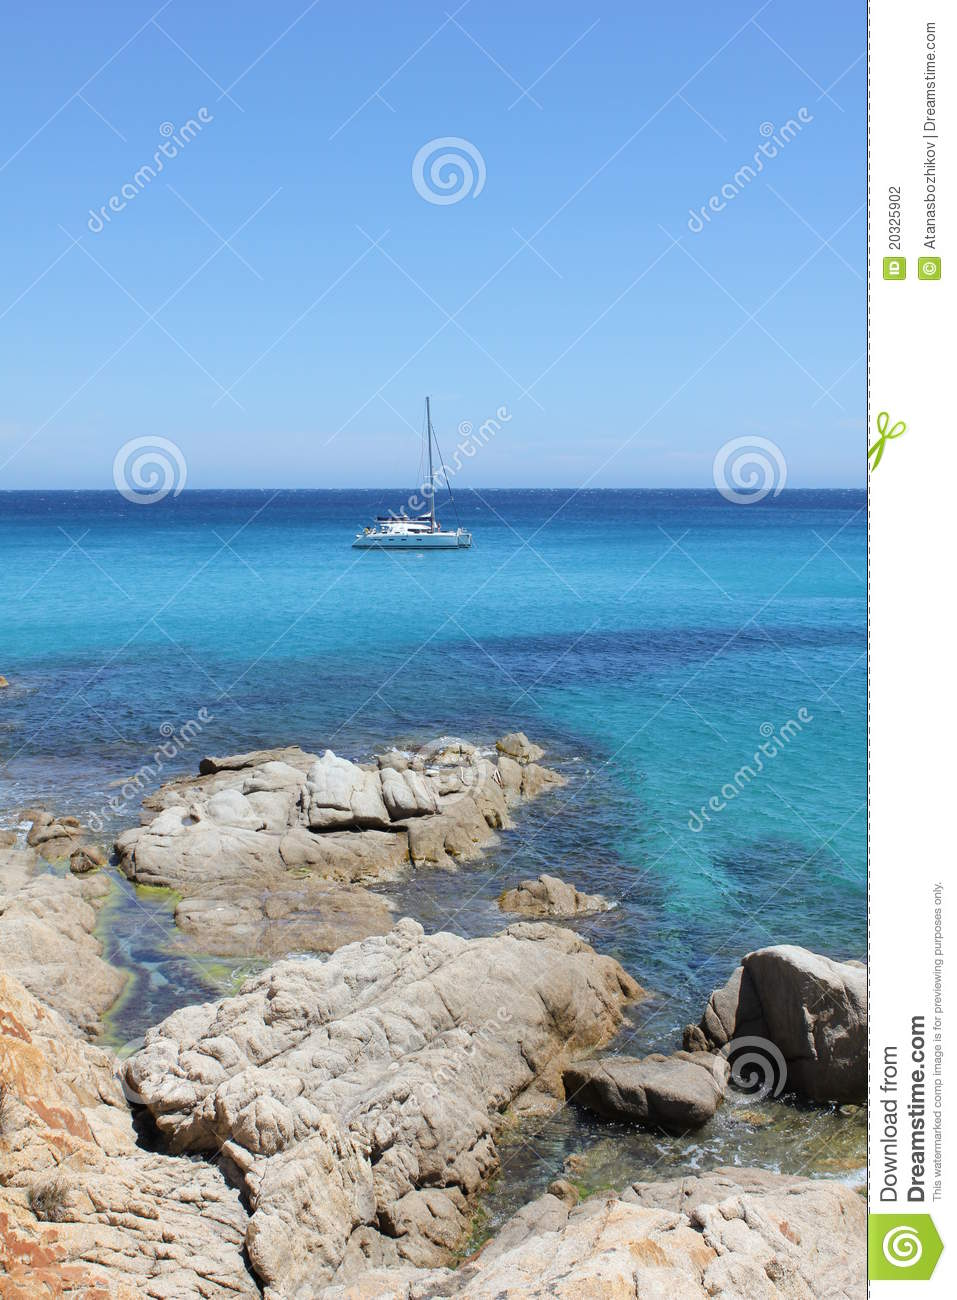 catamaran in antibes on the french riviera stock photography image 20325902. Black Bedroom Furniture Sets. Home Design Ideas